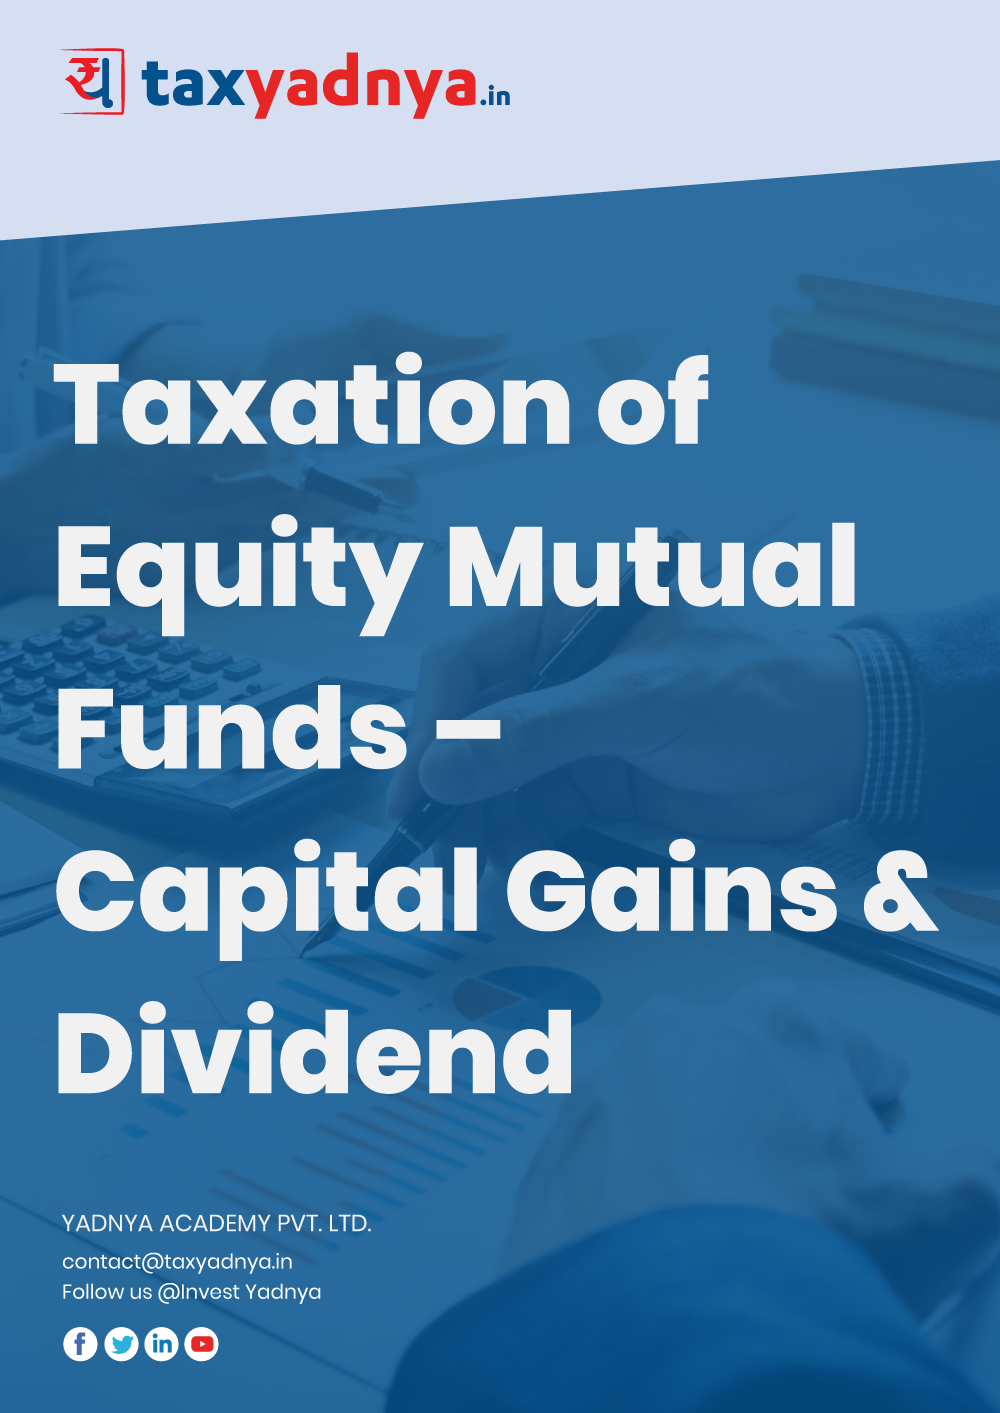 This eBook contains details about Capital Gain taxation of Equity Mutual Funds as well as Dividend Taxation on Equity Mutual Funds. Concept is explained with more than 15 different EXAMPLES on various scenarios. eBook also talks about how the Capital Gain works if the investor is below Basic Exemption limit of Income Tax in detail.